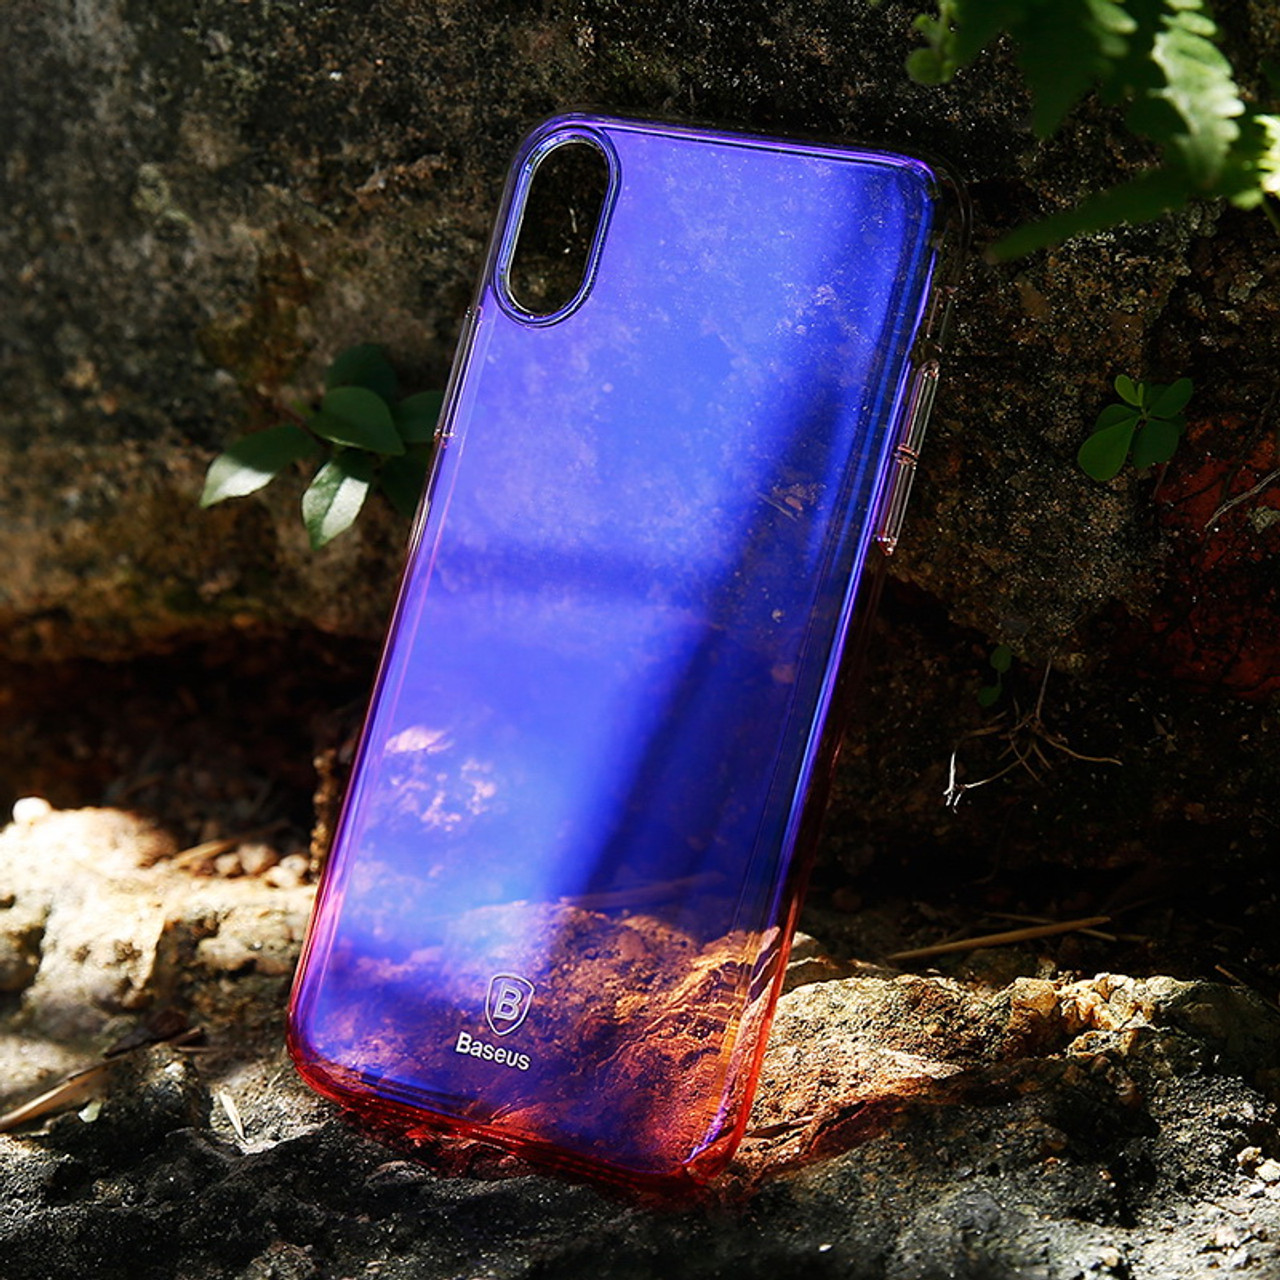 8a75472e46 ... Baseus Phone Case For iPhone X Gradient Color Ultra Slim Coque PC Hard  Back Cover Case ...